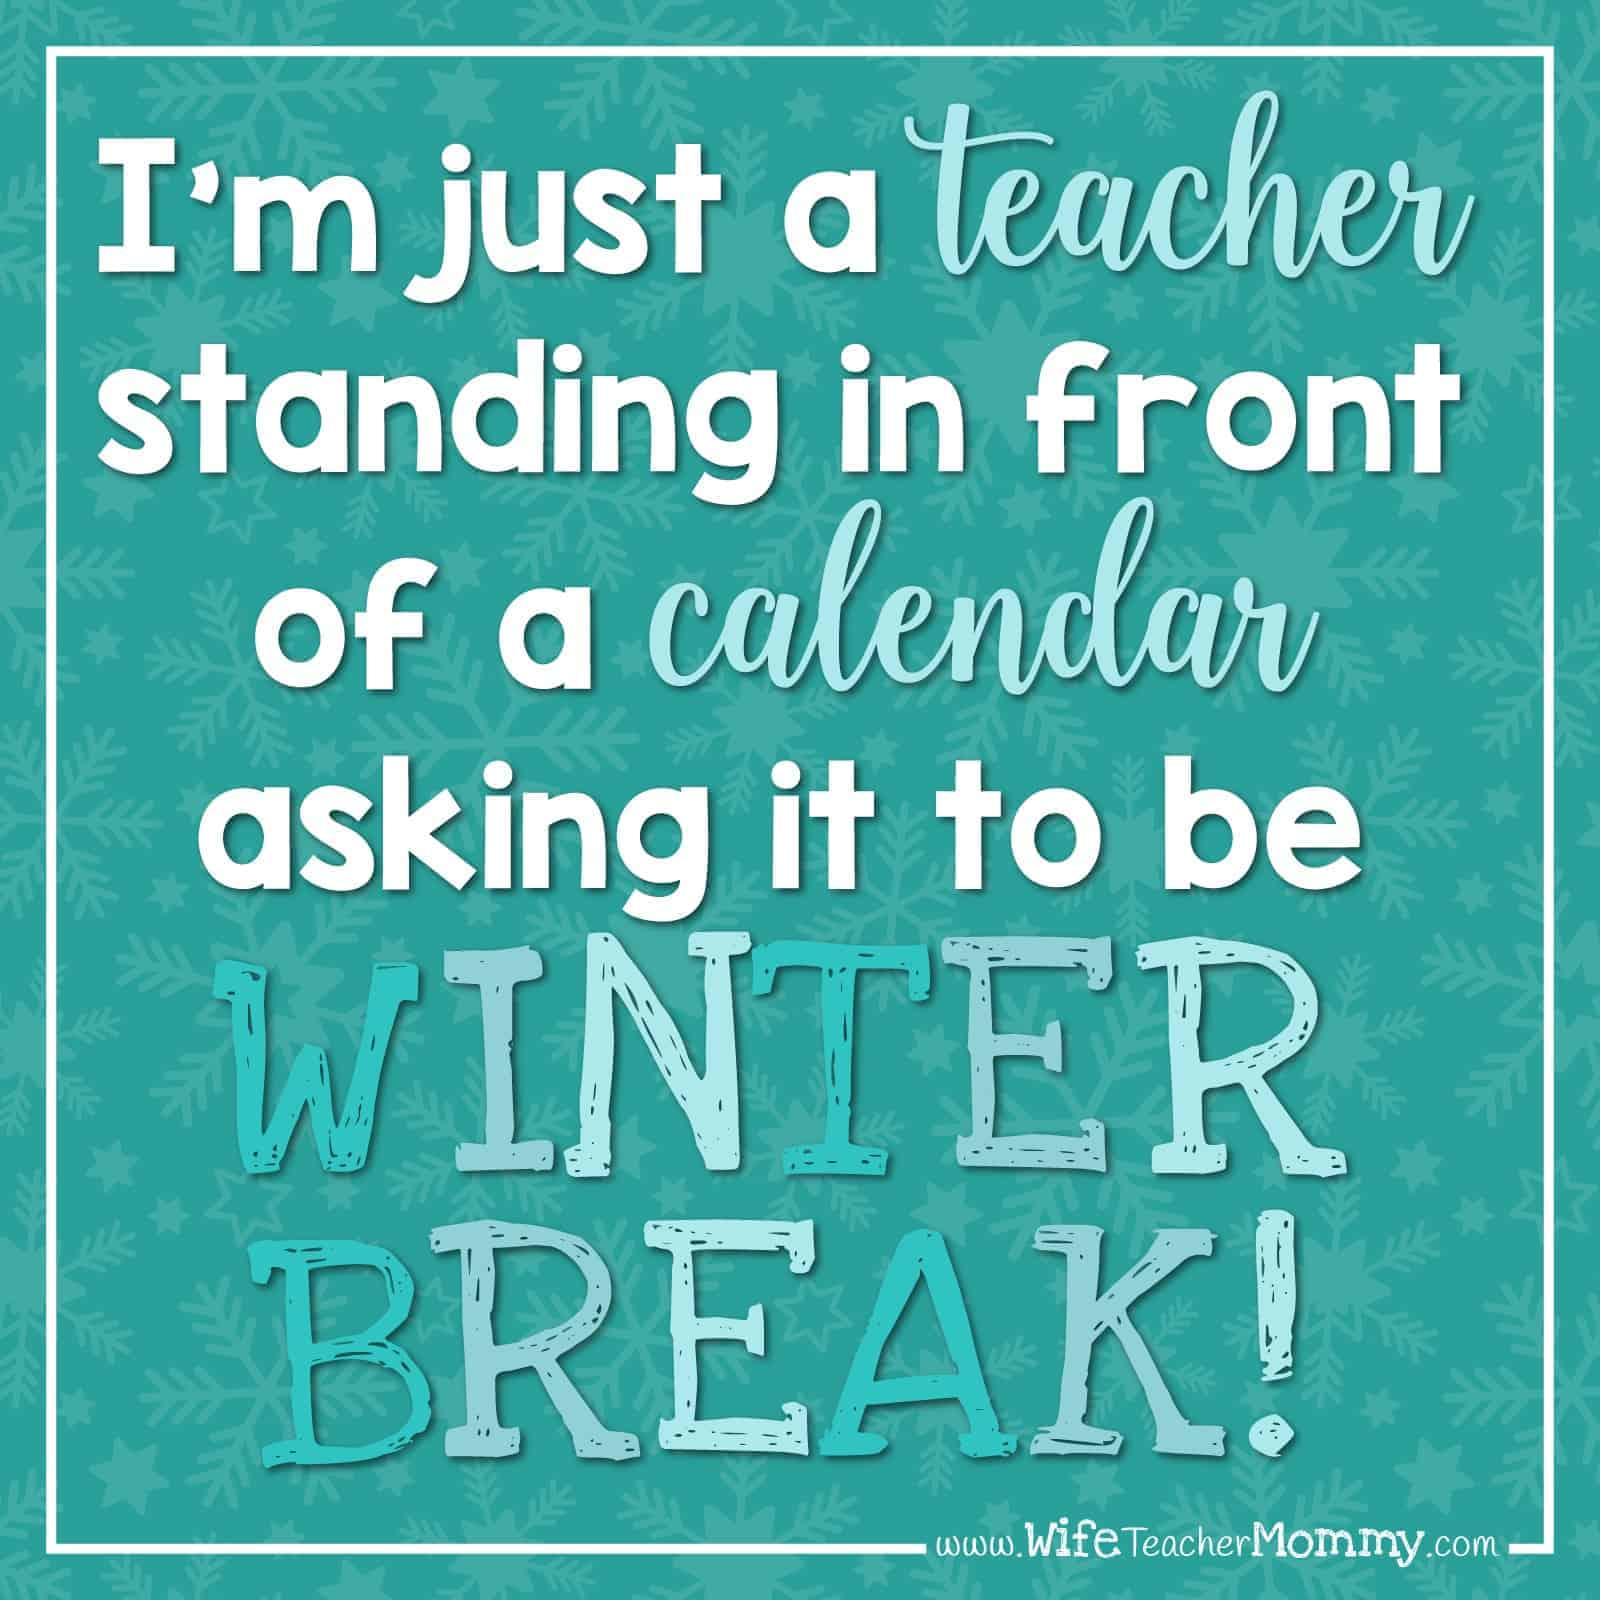 I'm just a teacher standing in front of a calendar asking it to be winter break!